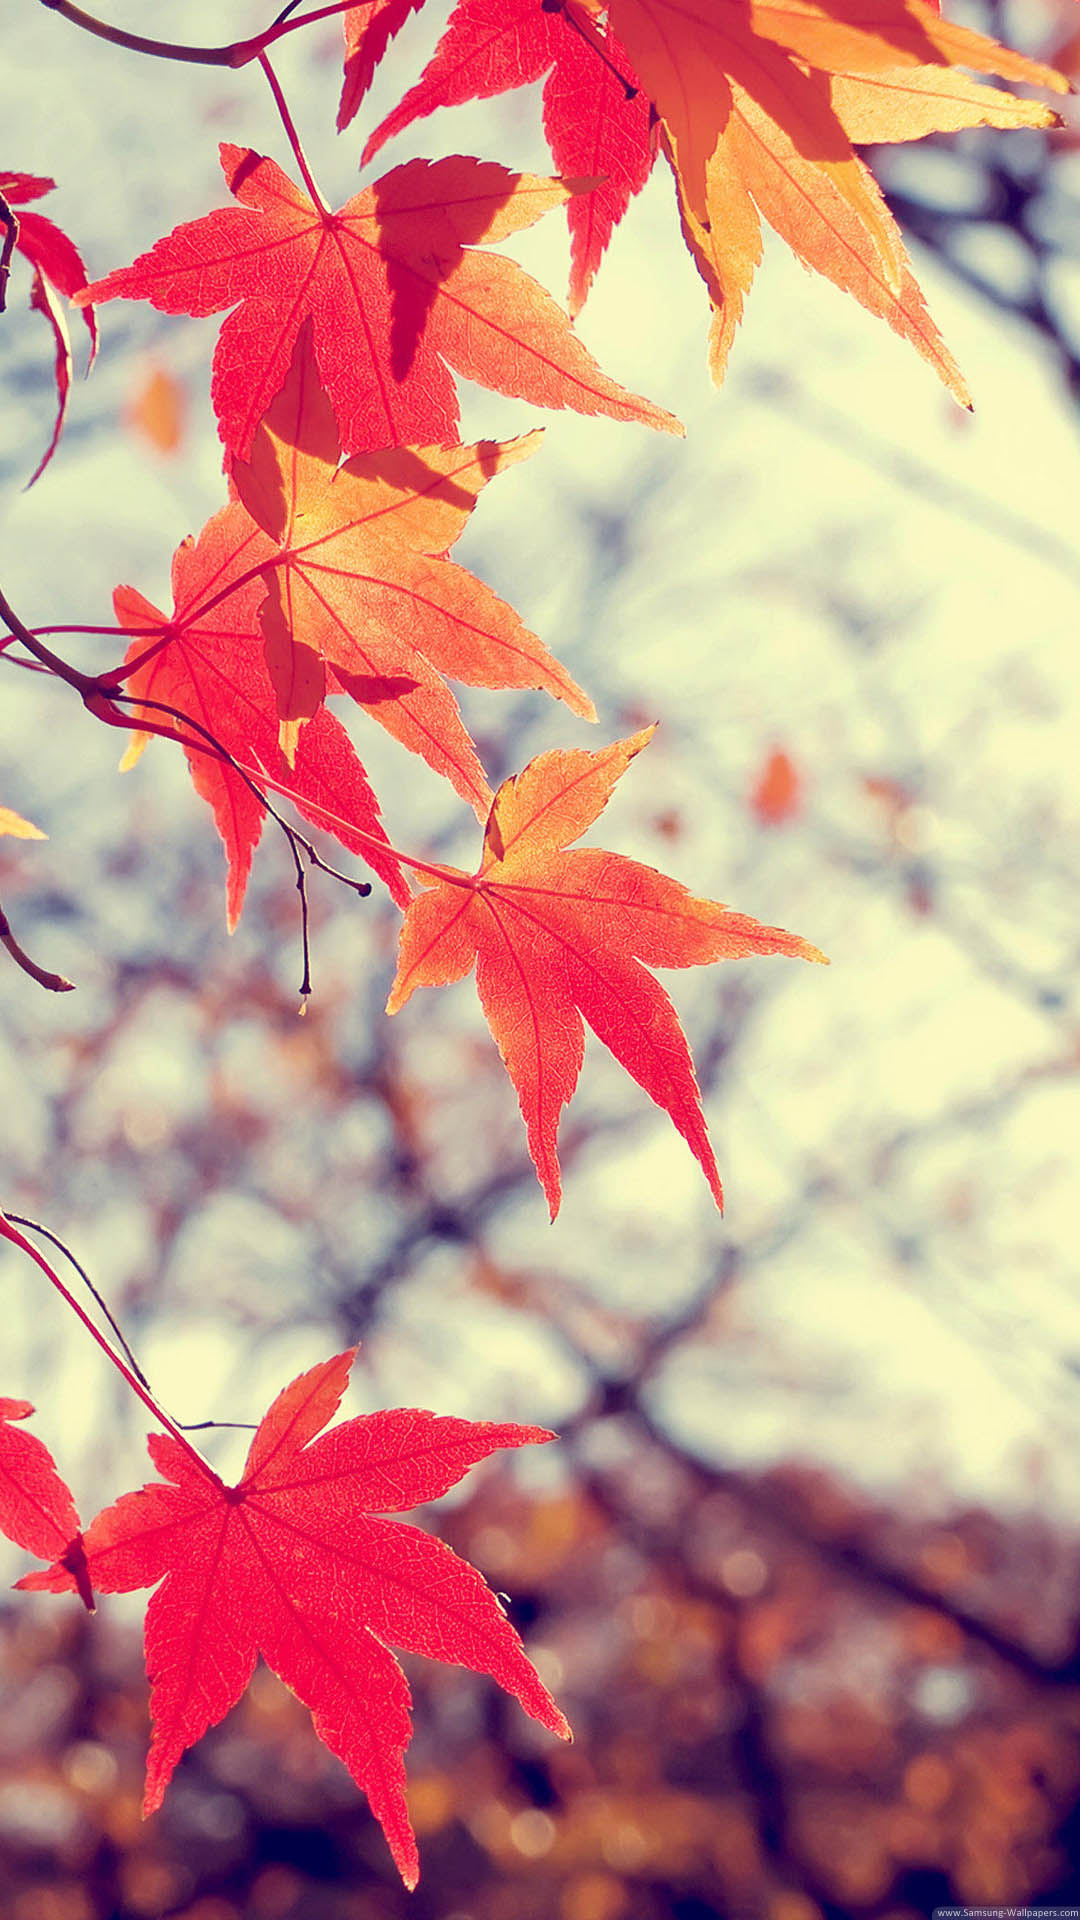 Free Animated Fall Desktop Wallpaper 71 Hd Samsung Wallpapers For Free Download